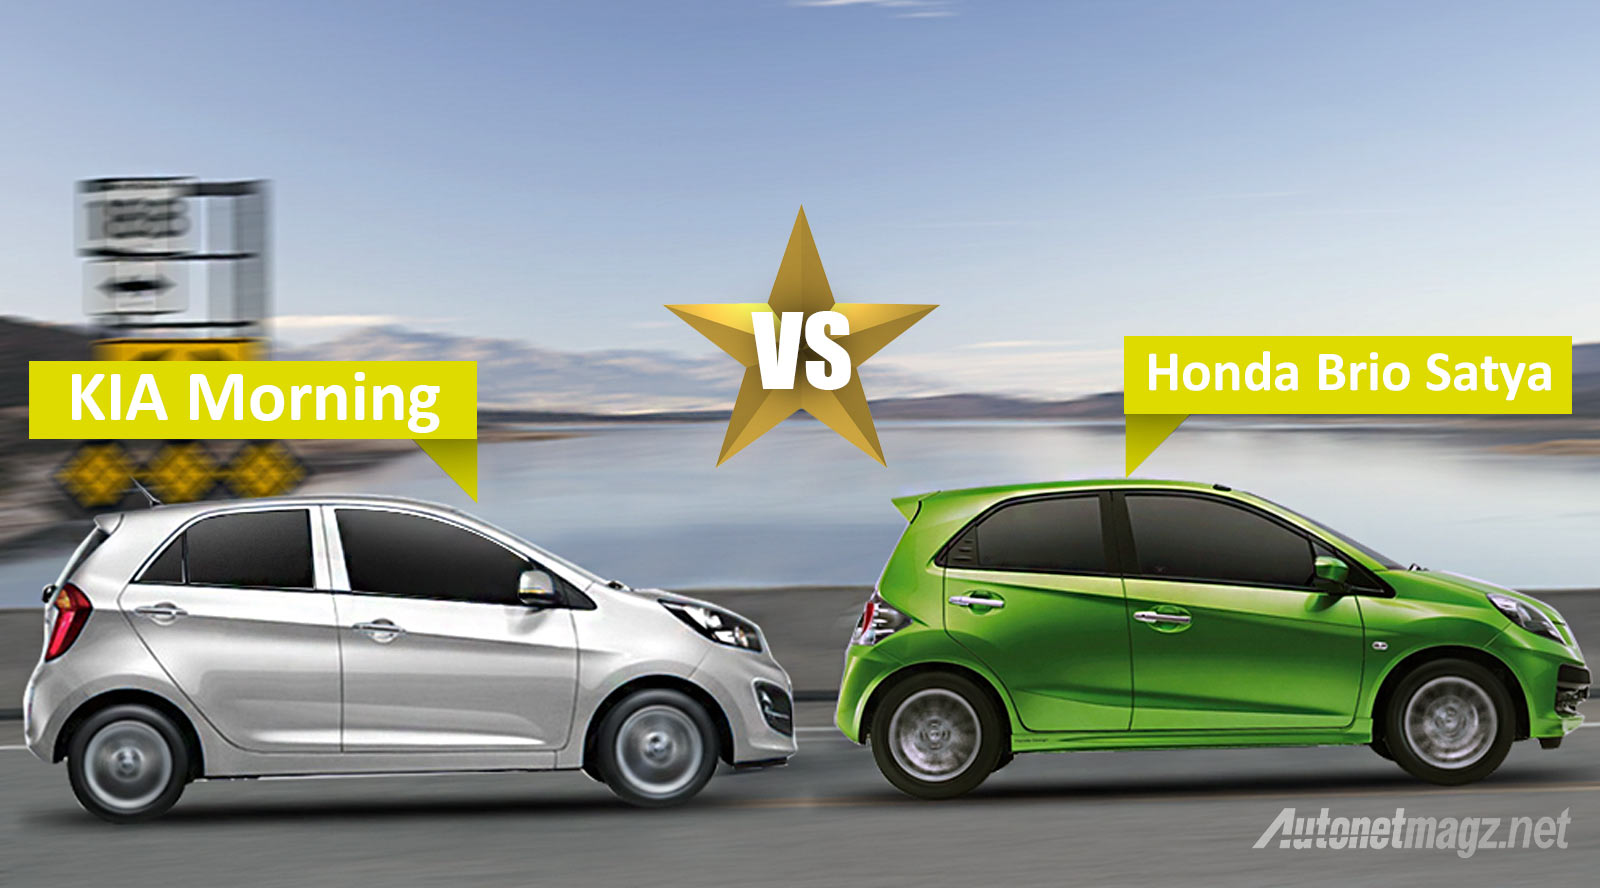 Honda, KIA-Morning-VS-Honda-Brio-Satya: Komparasi : KIA Morning VS Honda Brio Satya